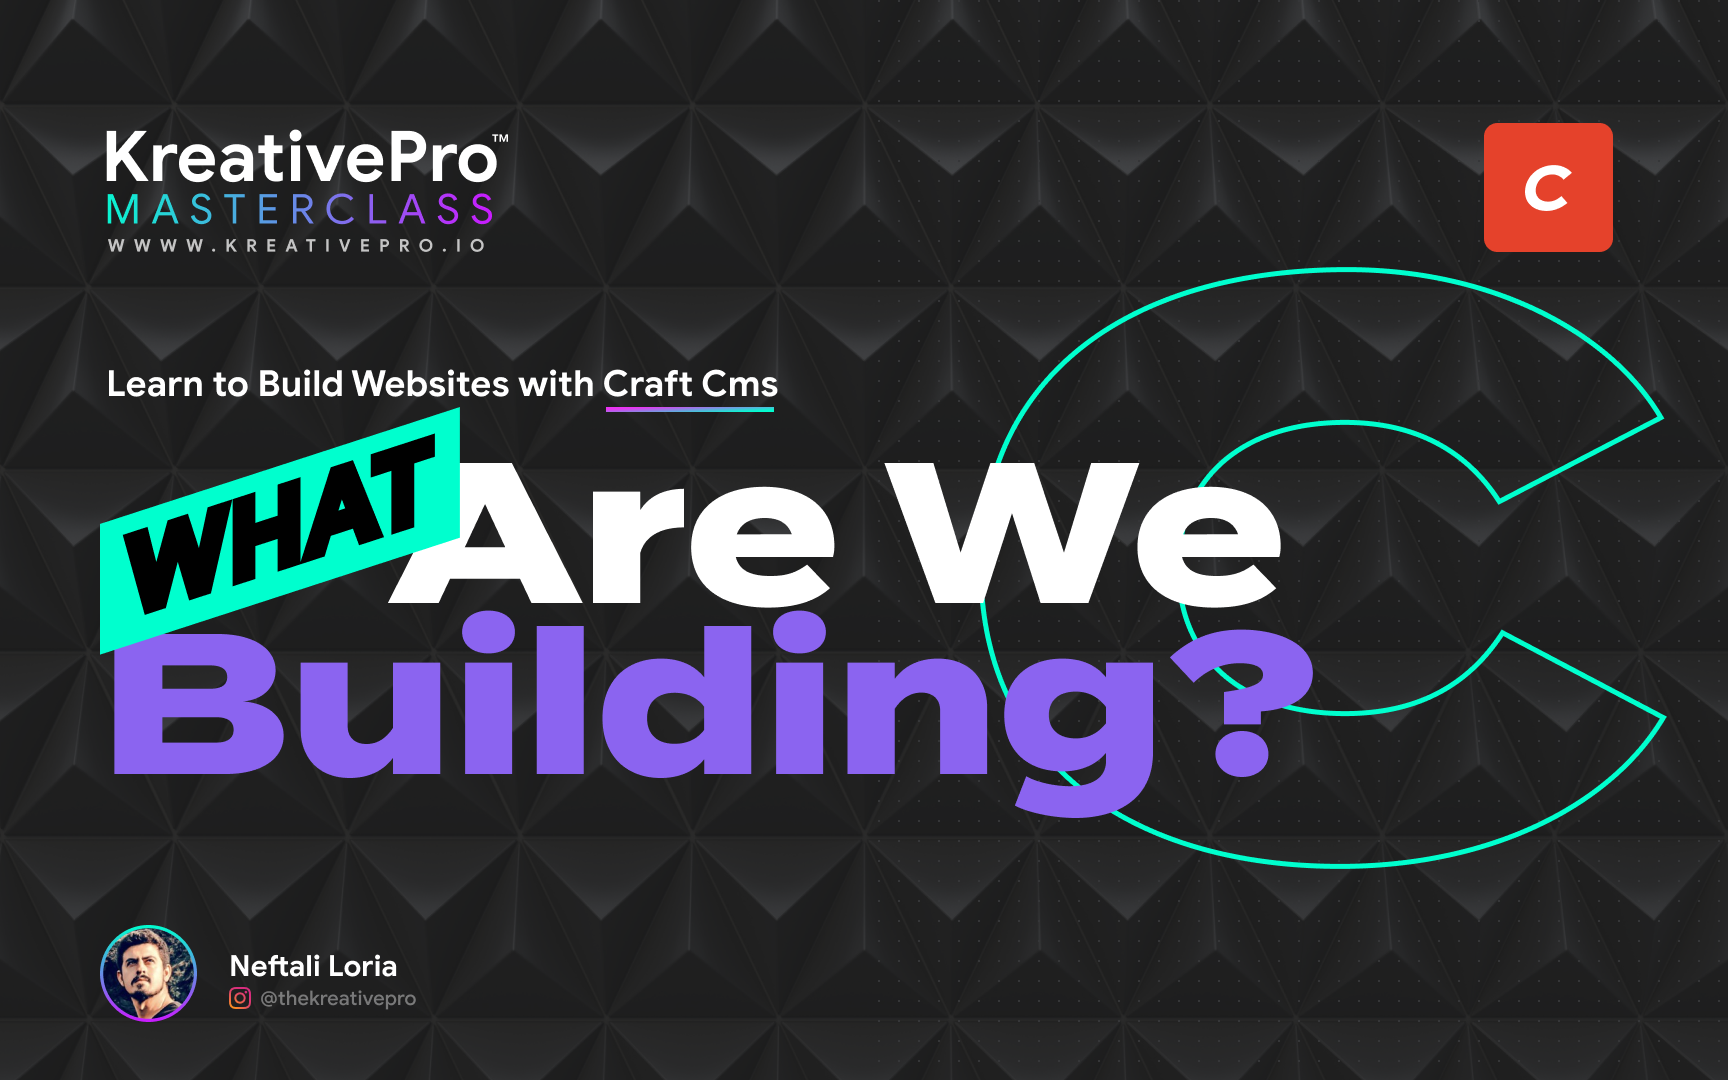 Craft 1.1 - What are we building